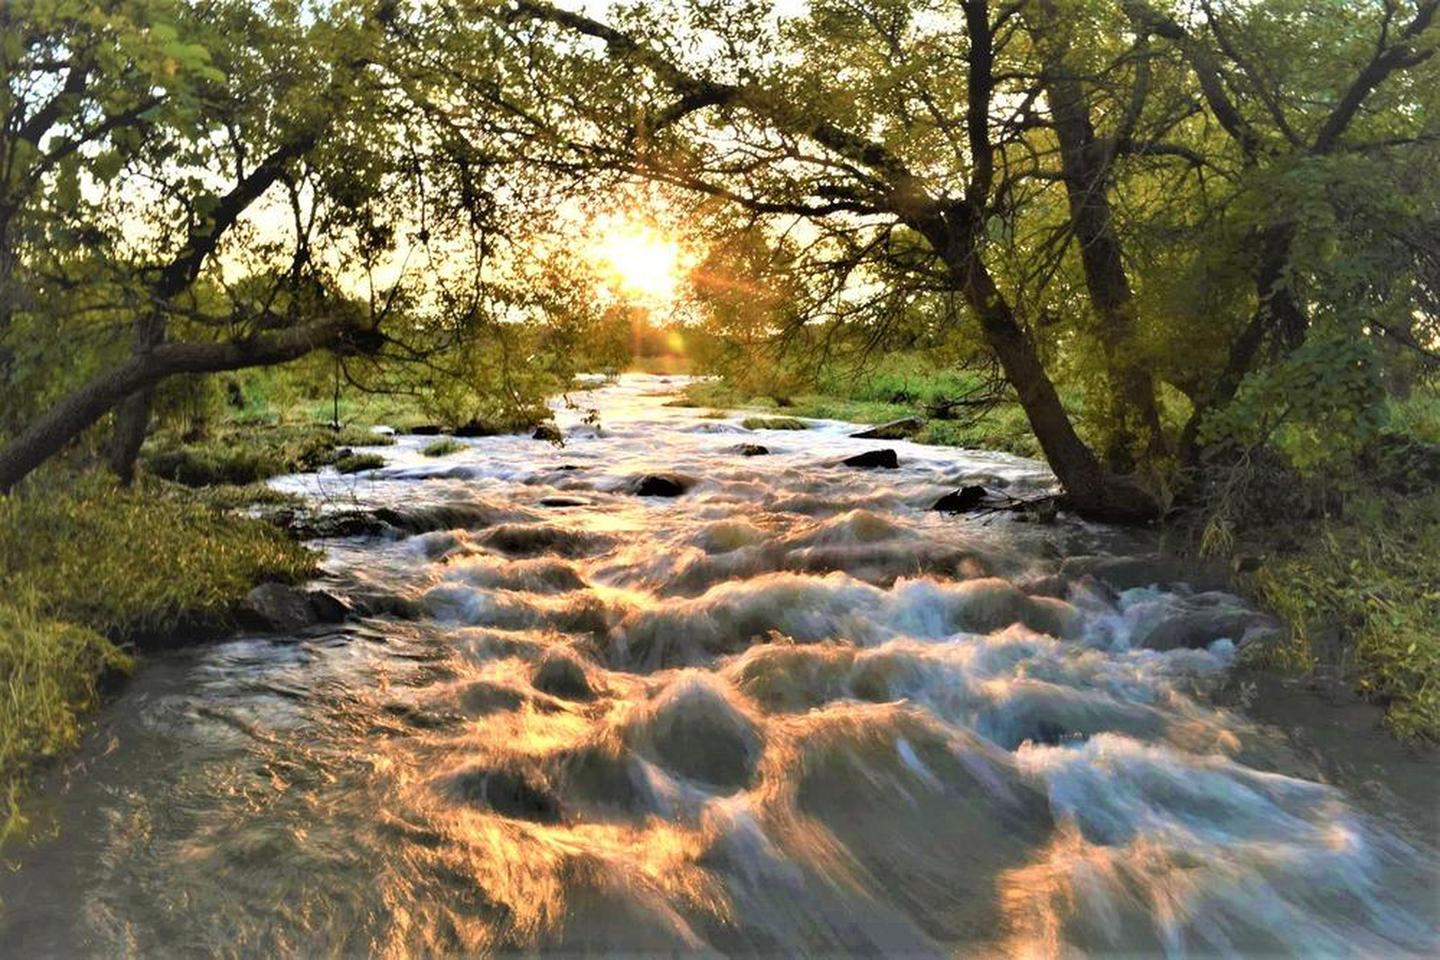 Sunrise over Pipestone CreekThe 3/4-mile Circle Trail is open 7 days a week all year for visitors to enjoy